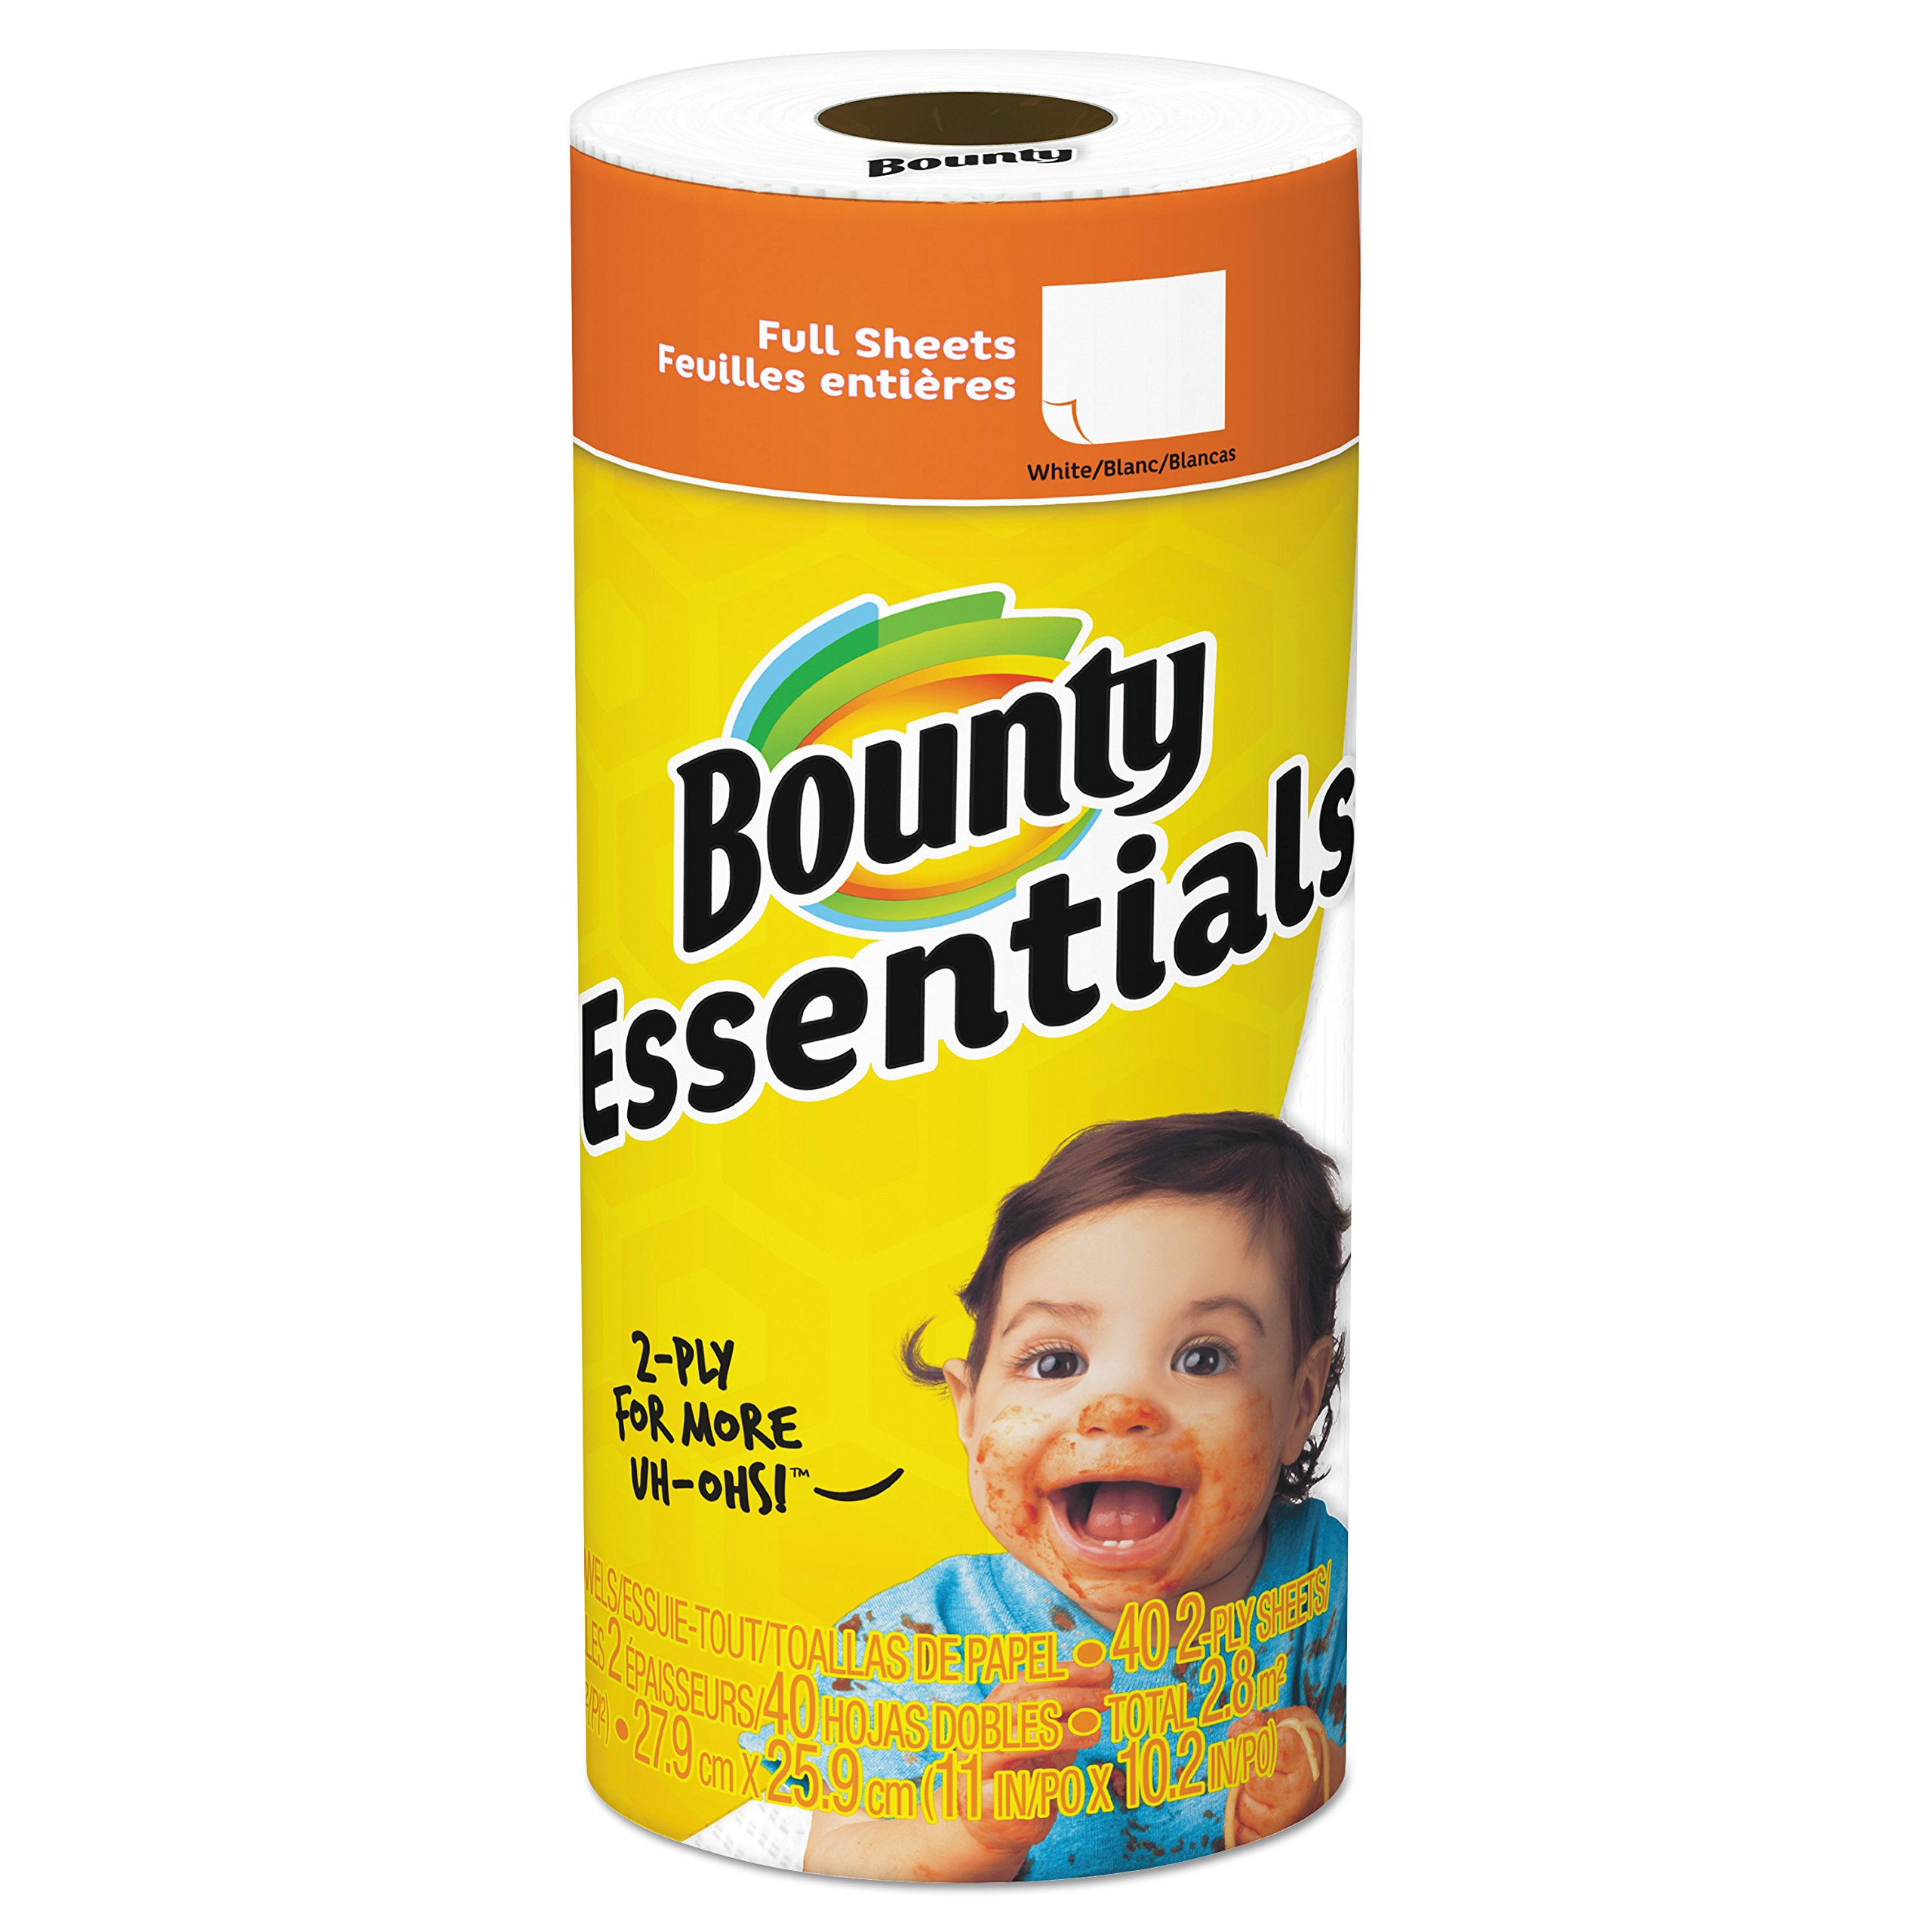 Bounty 92976CT Basic Paper Towels, 10.19 x 10.98, 1-Ply, 44 Per Roll (Case of 30 Rolls)